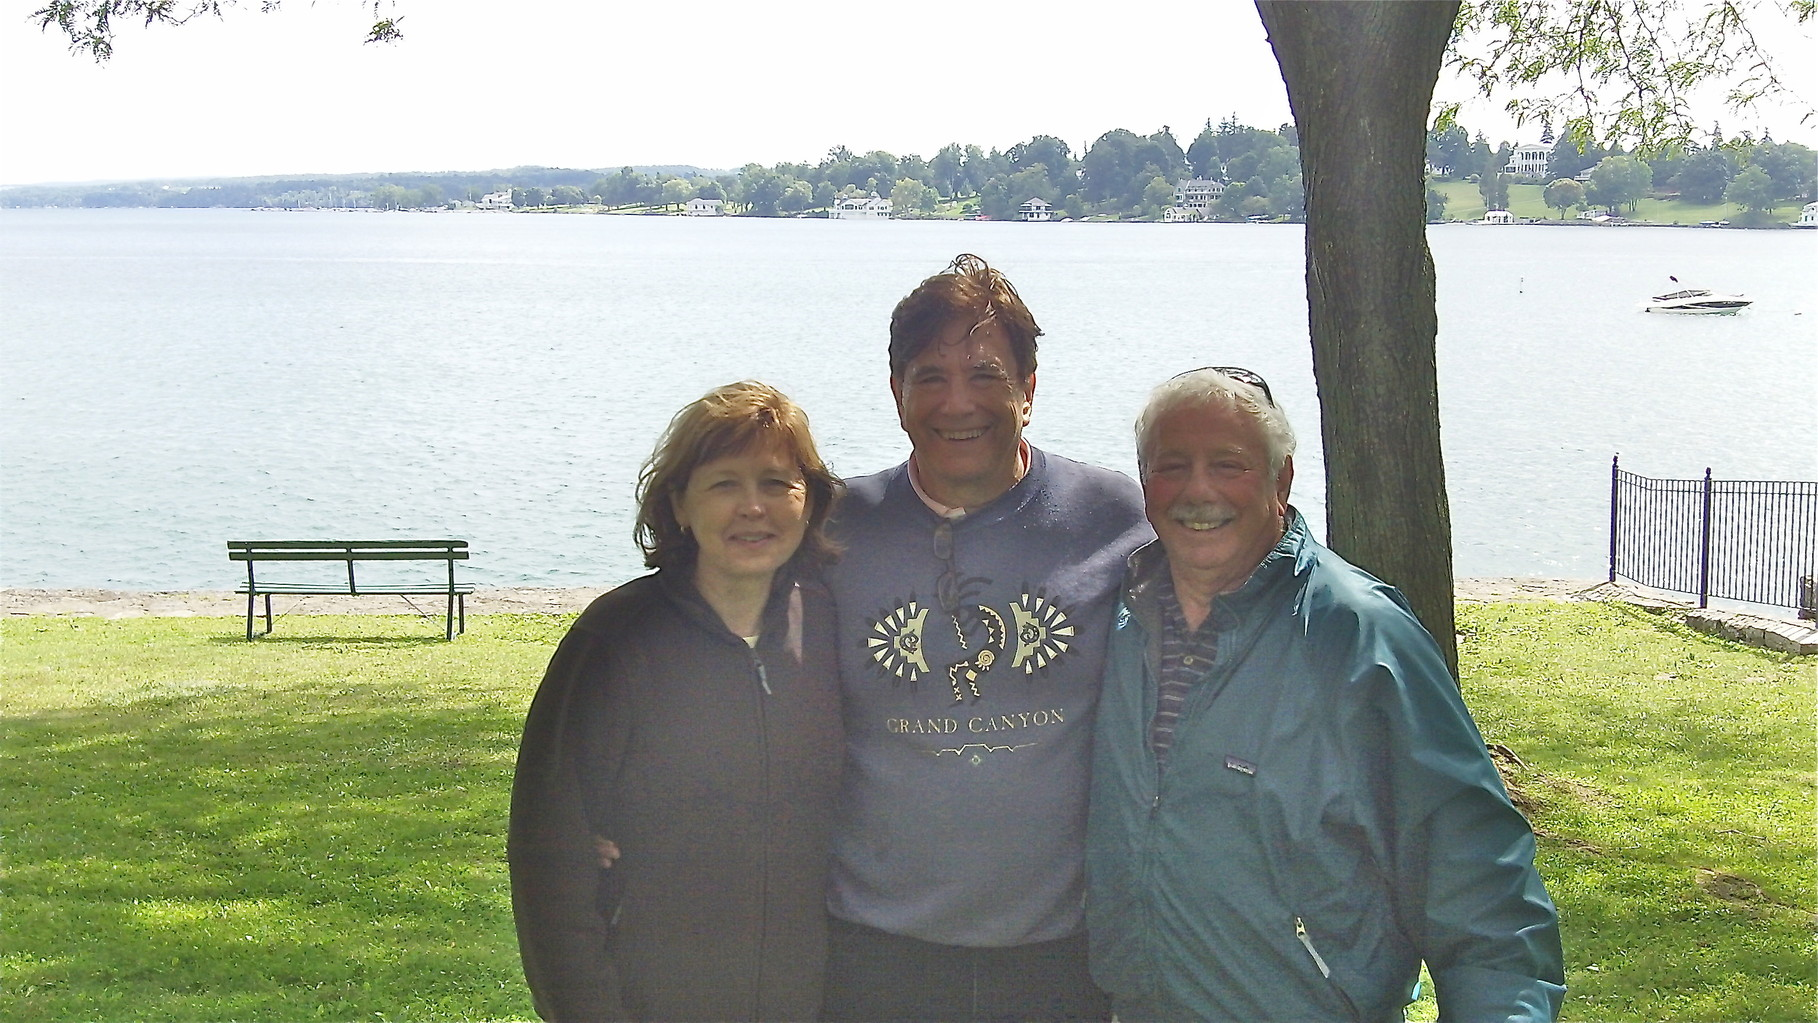 Barbara, John, & Don, town of Skaneateles